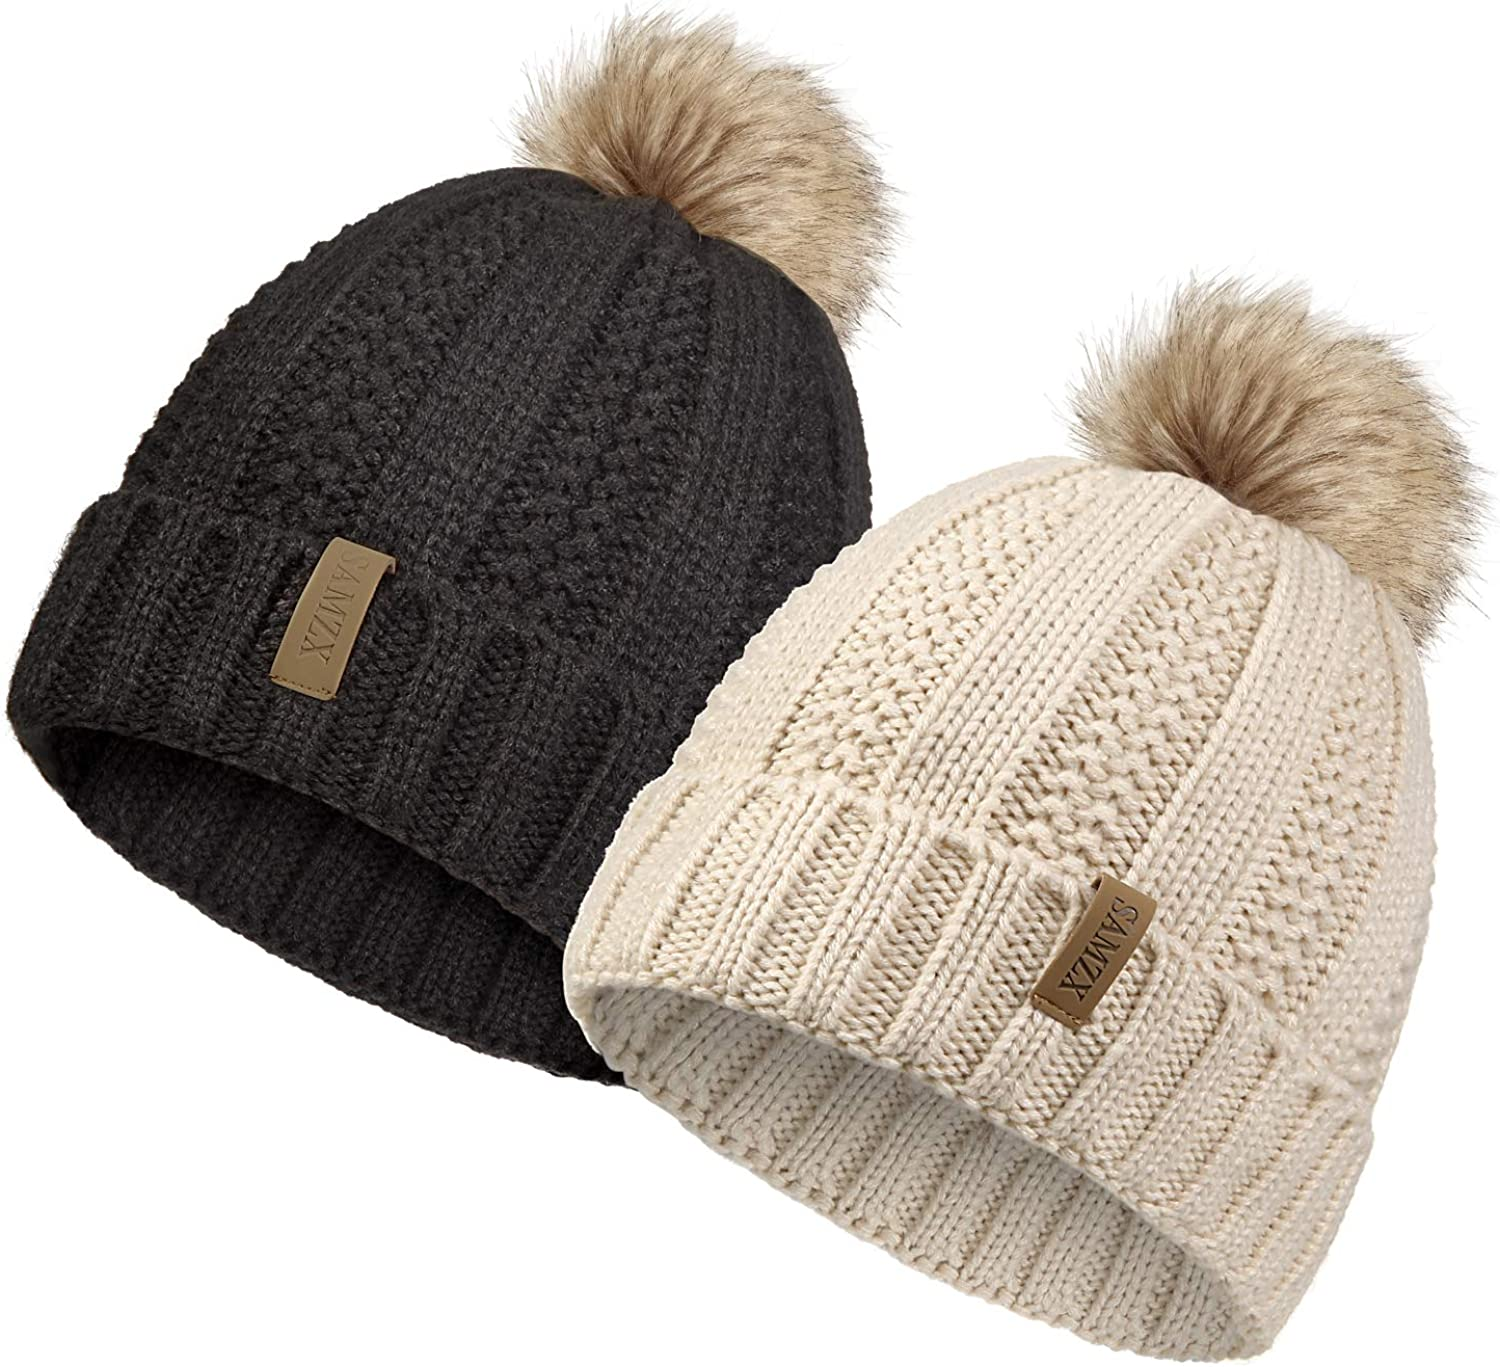 SAMZX Womens 70% OFF Outlet Winter Hat Thick Cable with Free shipping / New Knit Beanie for F Women